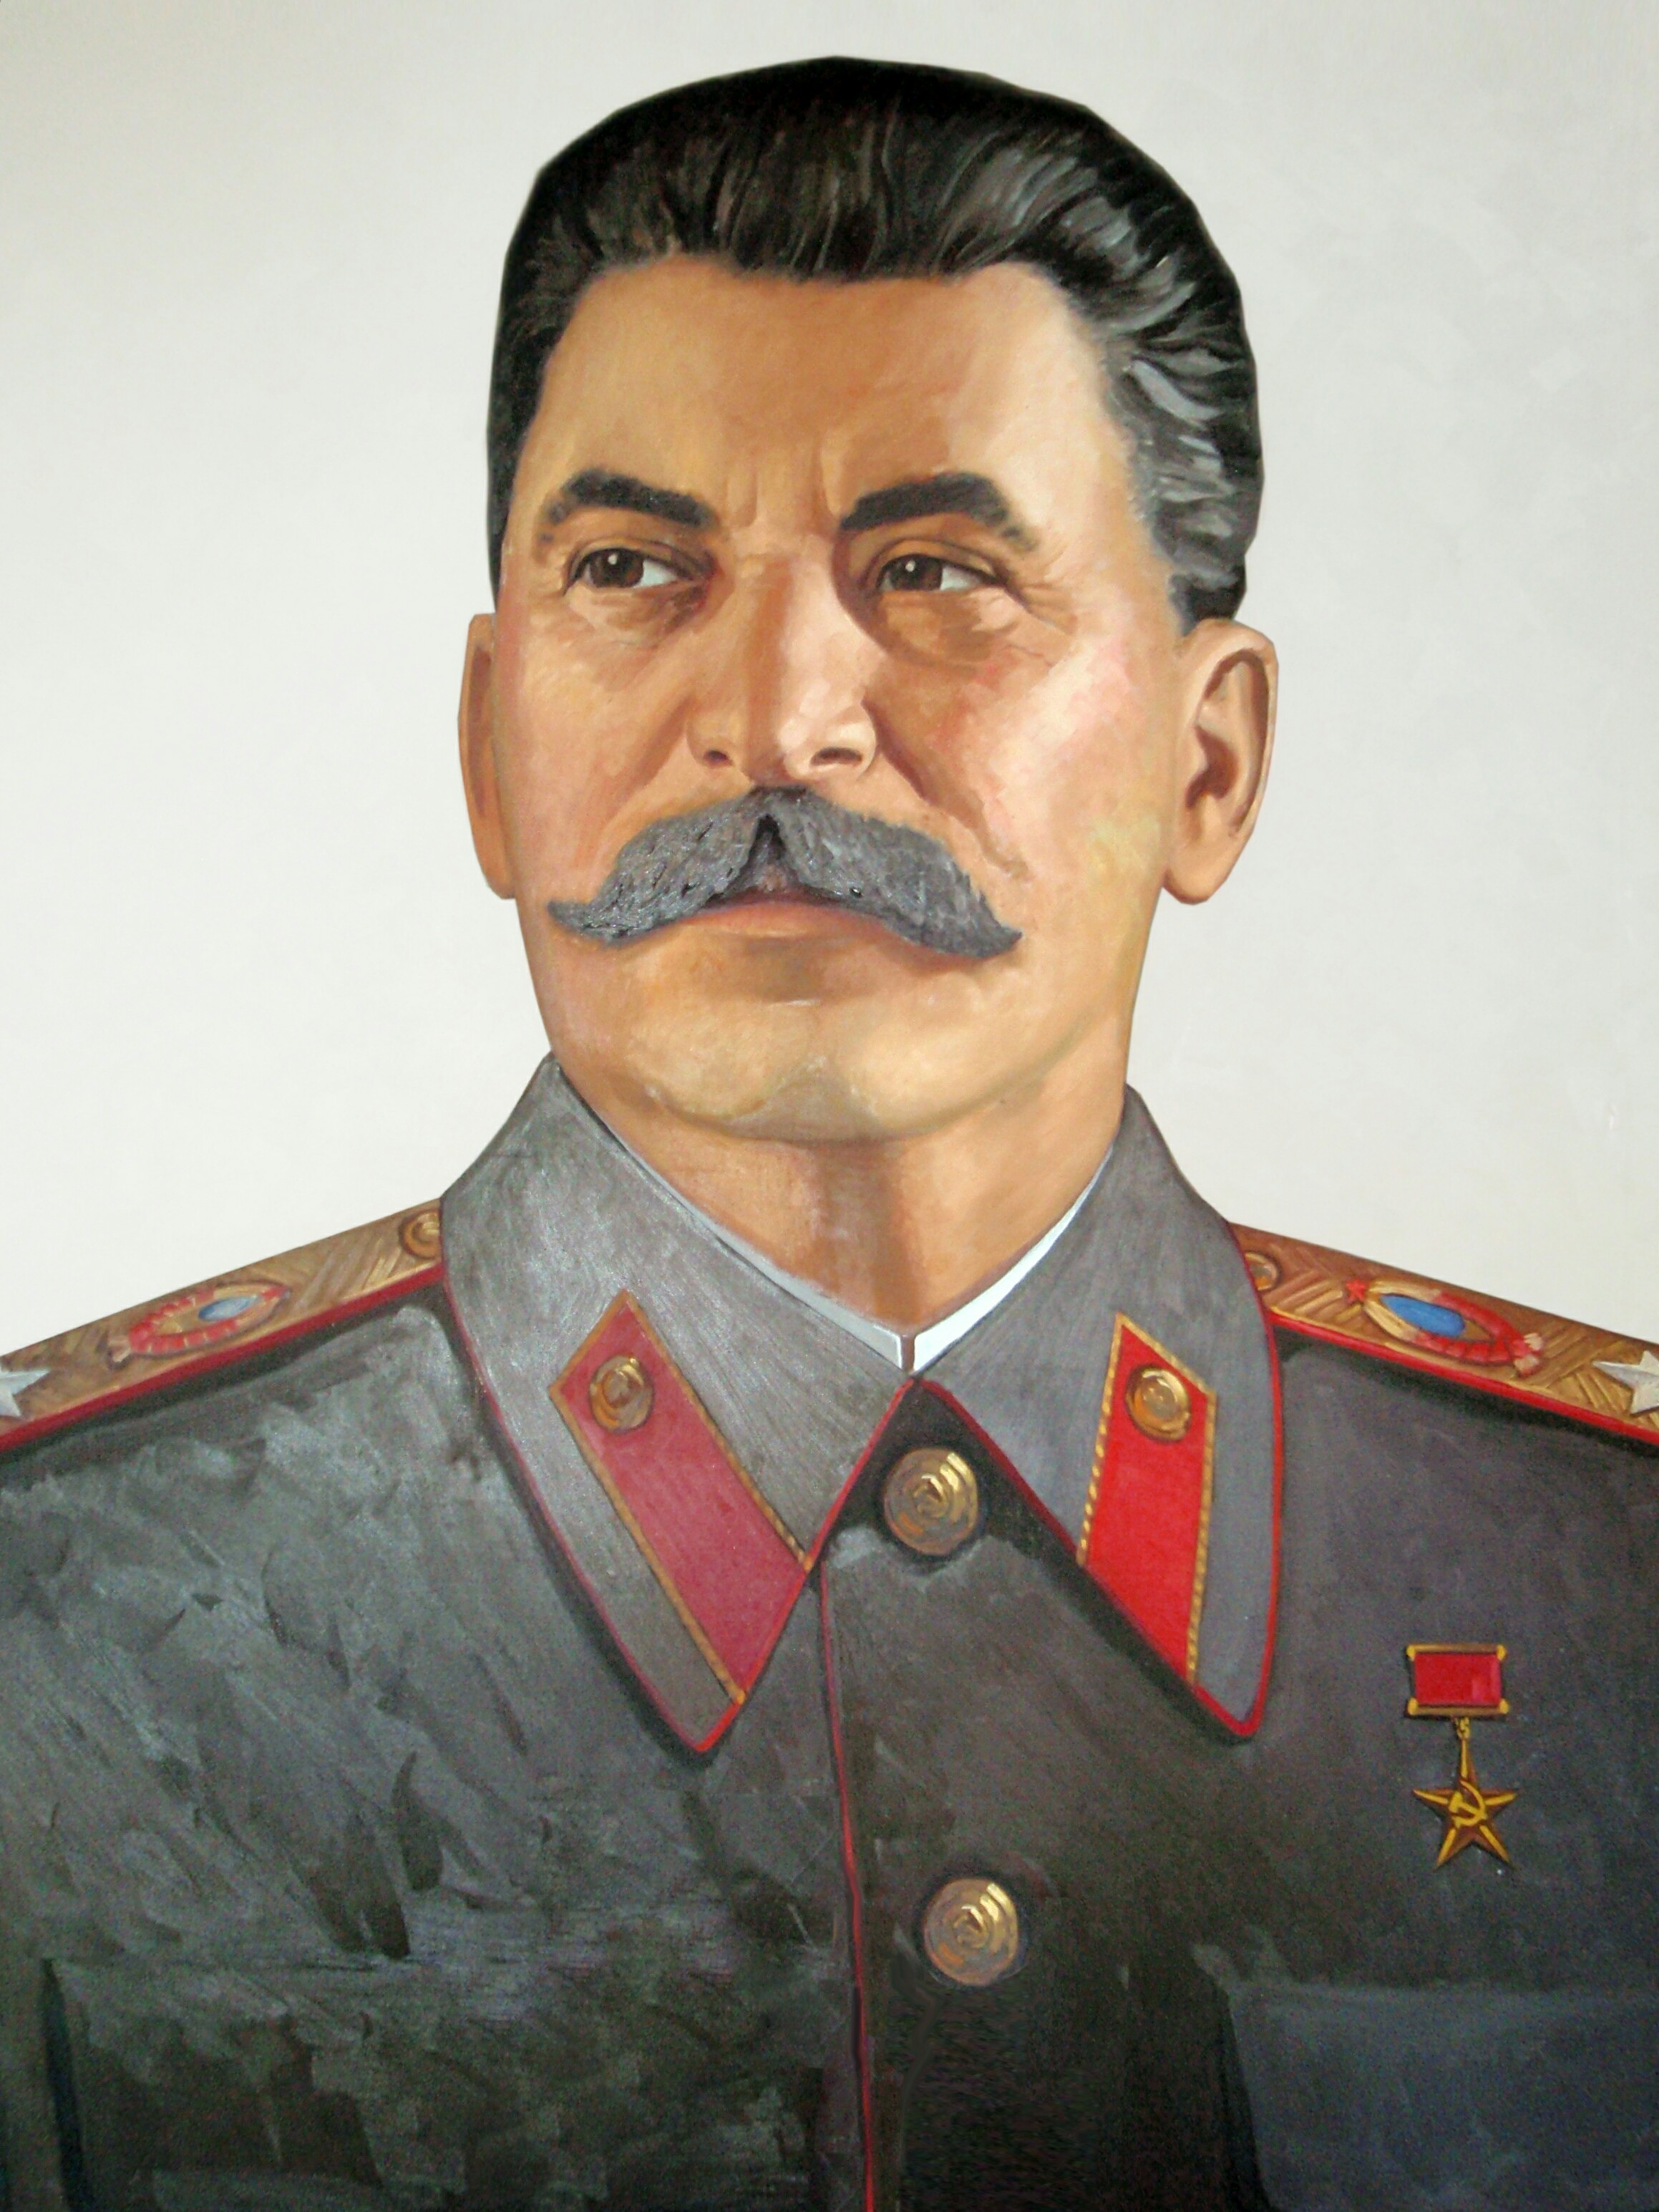 joseph stalin Joseph stalin (1878–1953) served as the general secretary of the communist party of the soviet union's central committee from 1922 until his death in 1953.